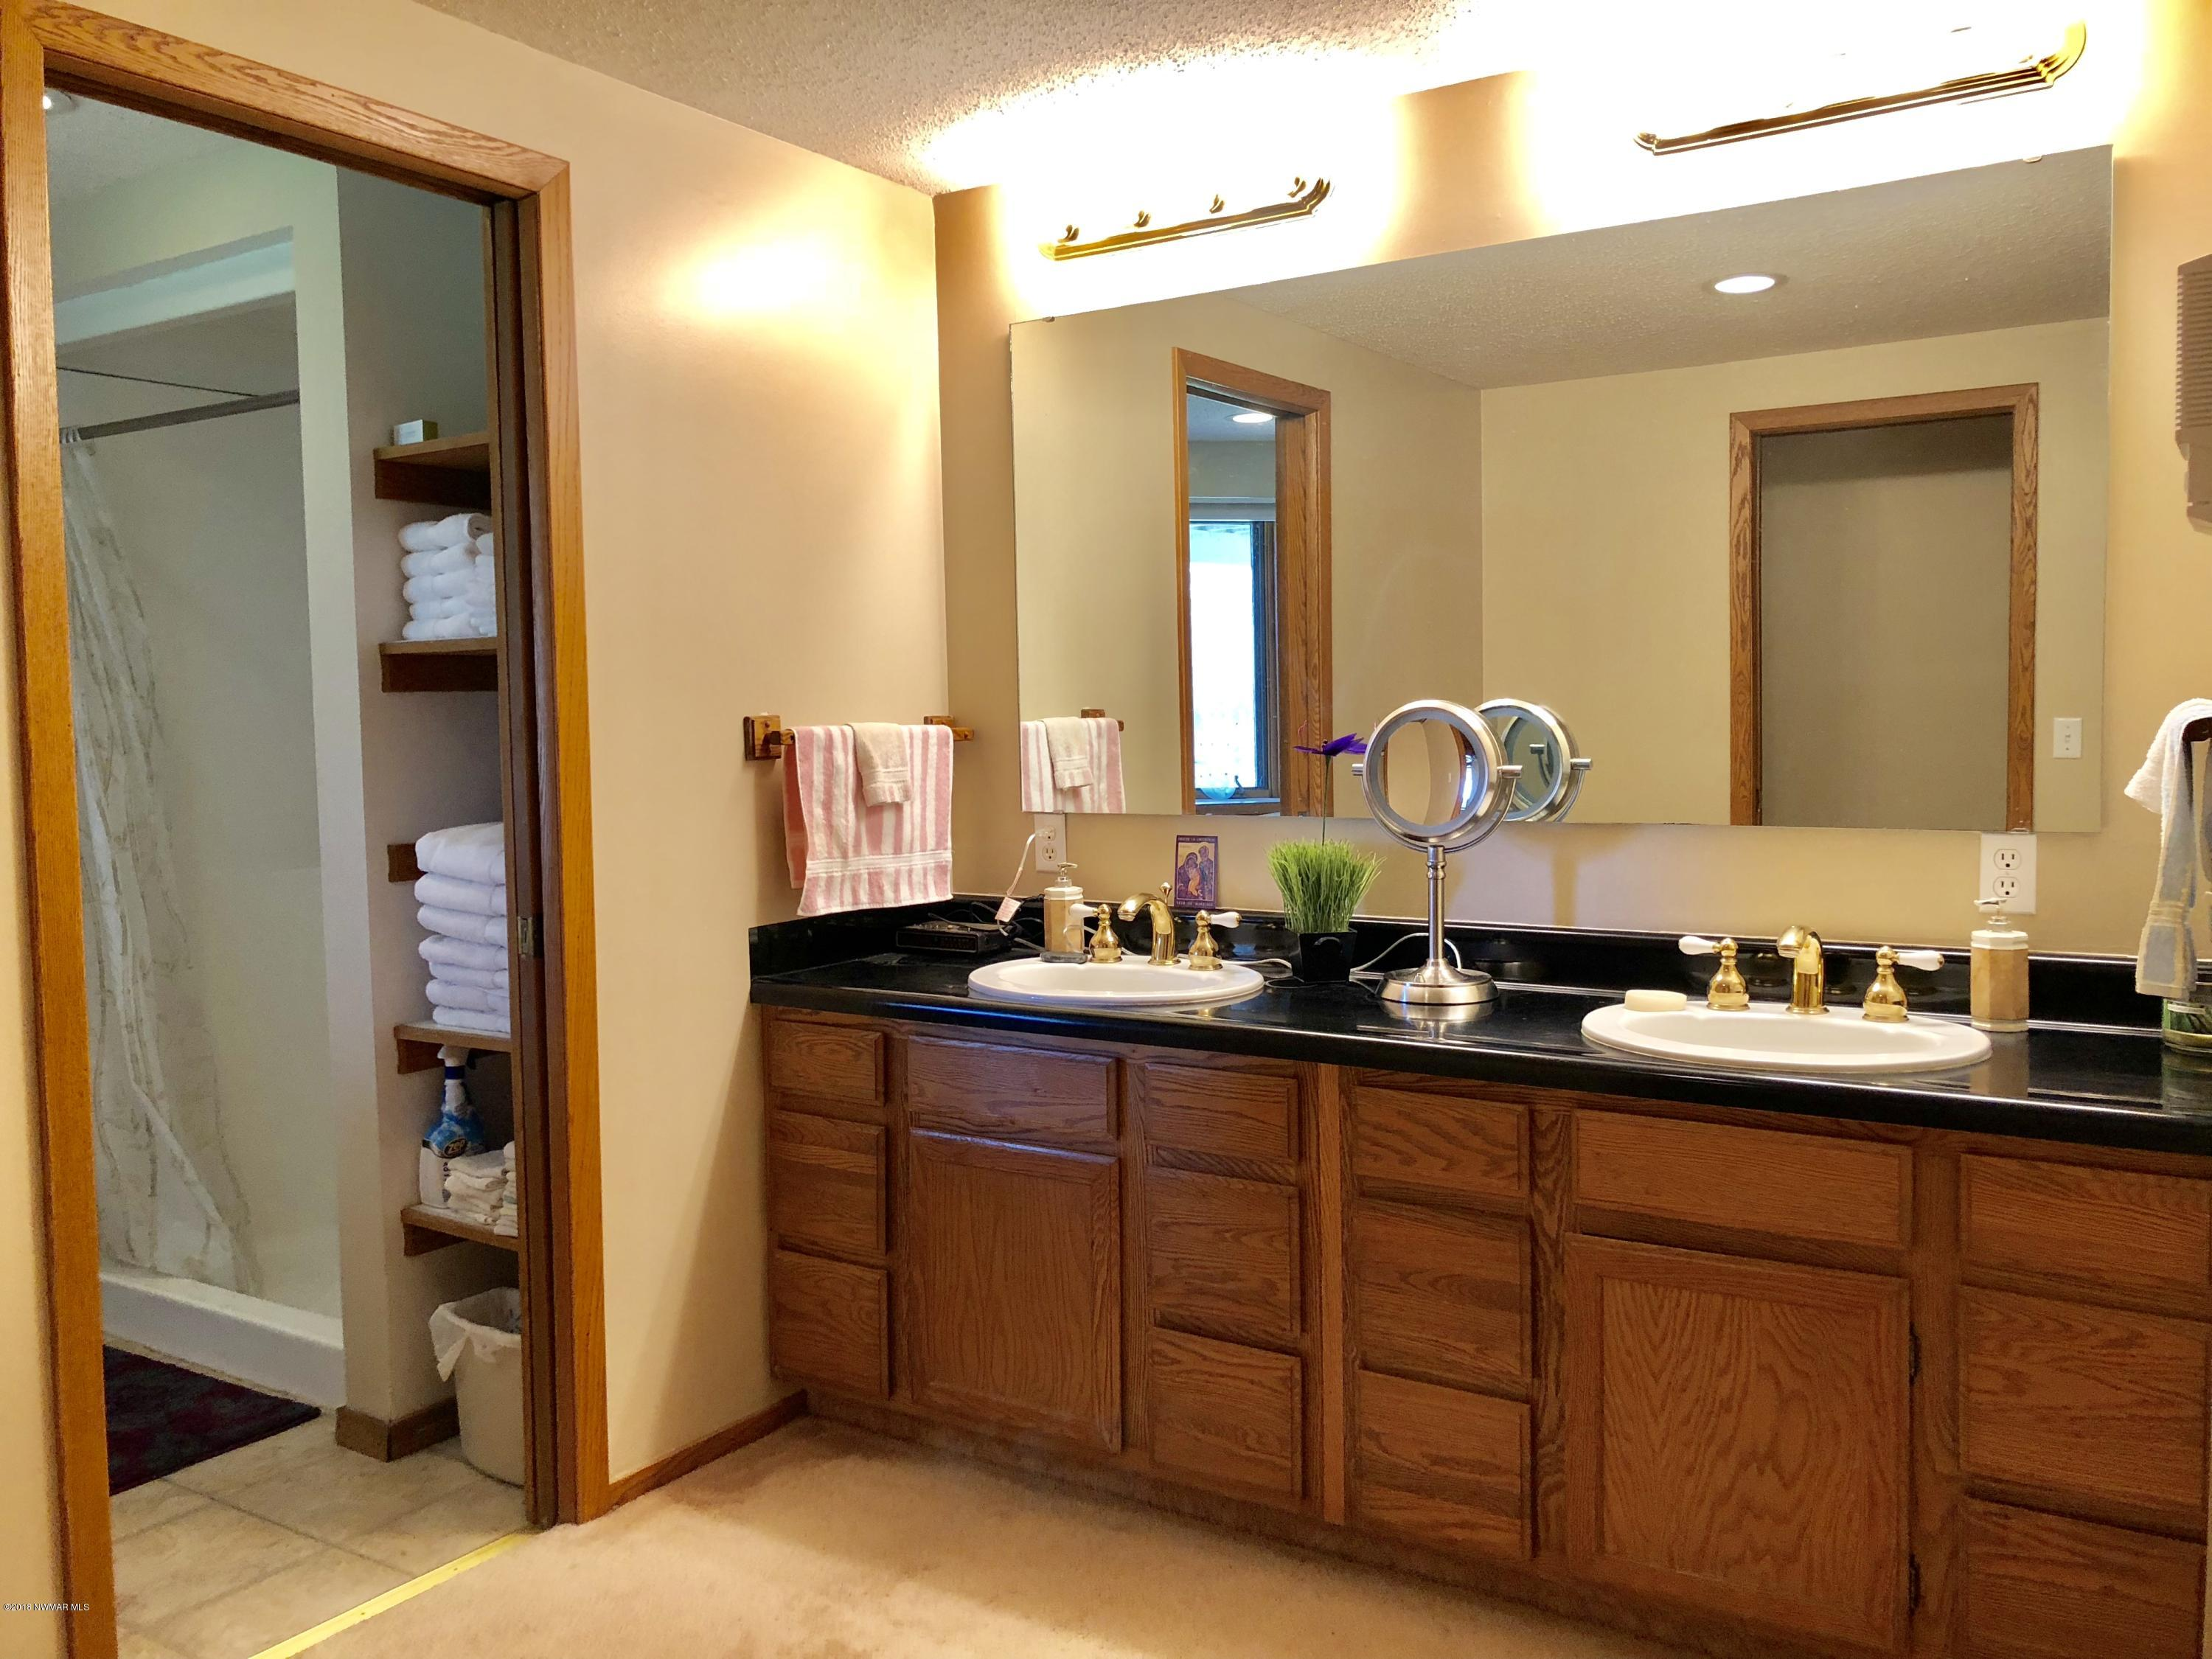 Master bath with double sinks